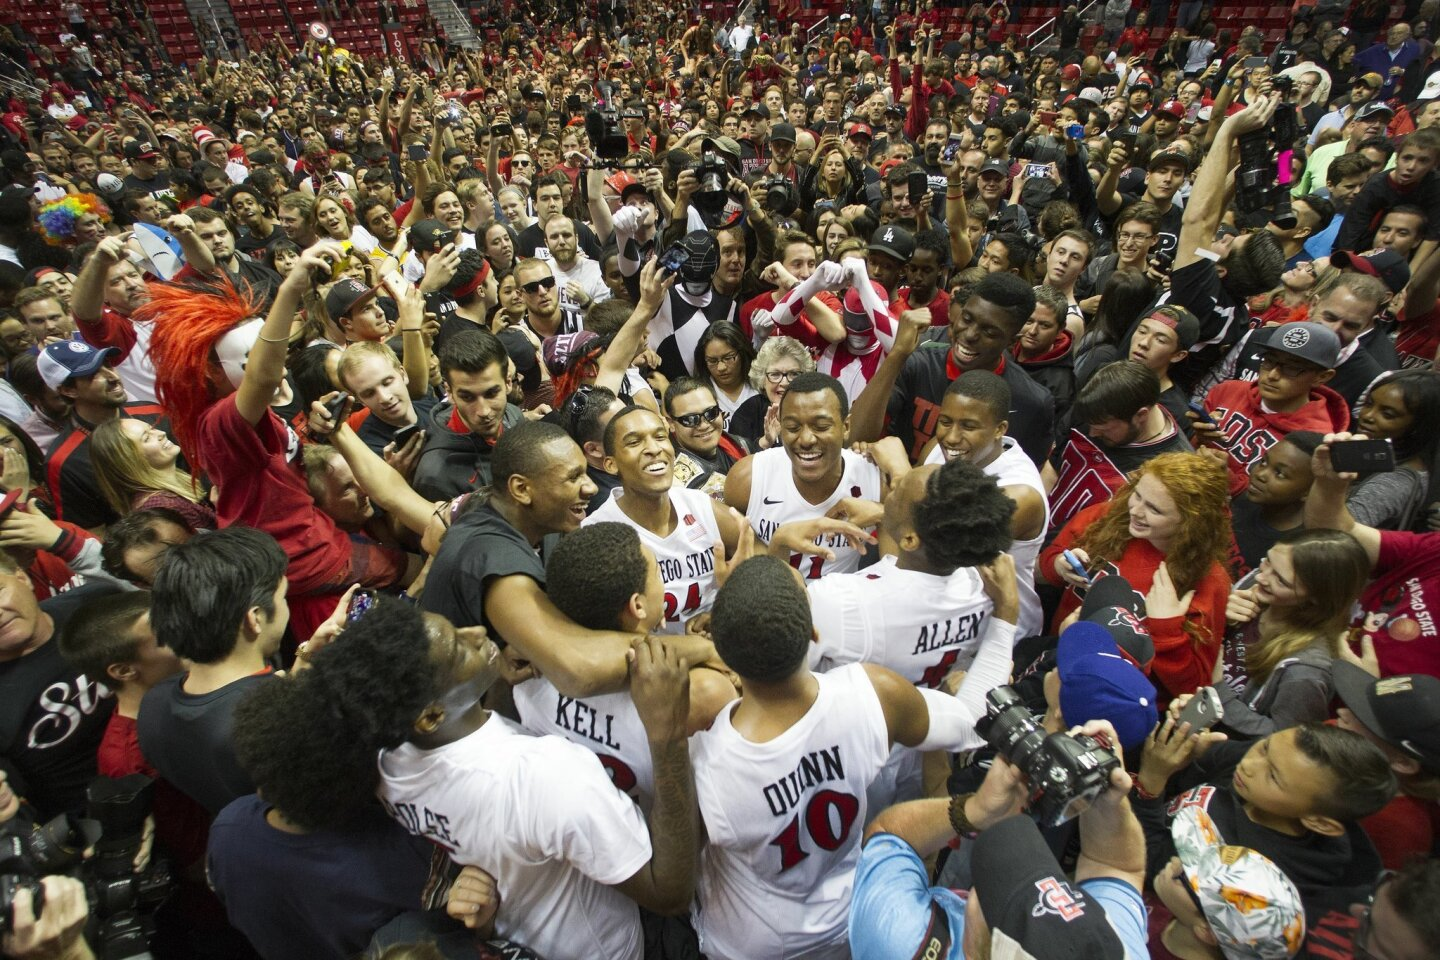 San Diego State vs. Nevada Men's Basketball at Viejas Arena. Fans storm the floor after the Aztecs beat Nevada 67-43 securing a tie of the Mountain West Conference Title with Boise State.